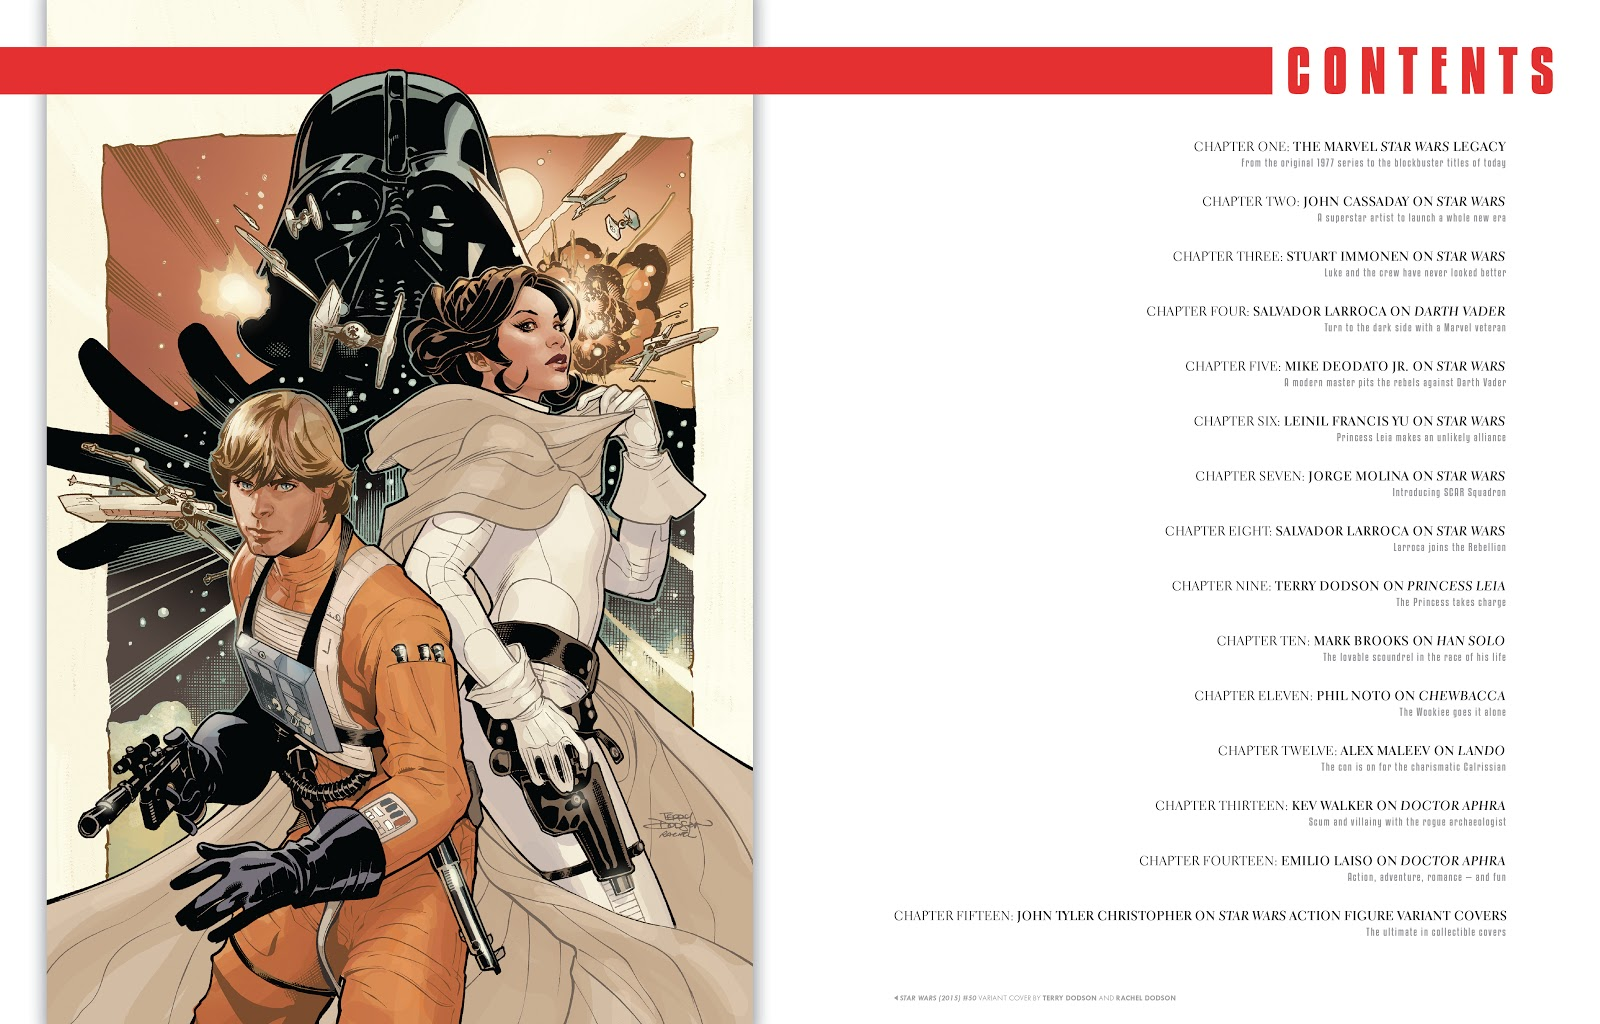 Read online The Marvel Art of Star Wars comic -  Issue # TPB (Part 1) - 4